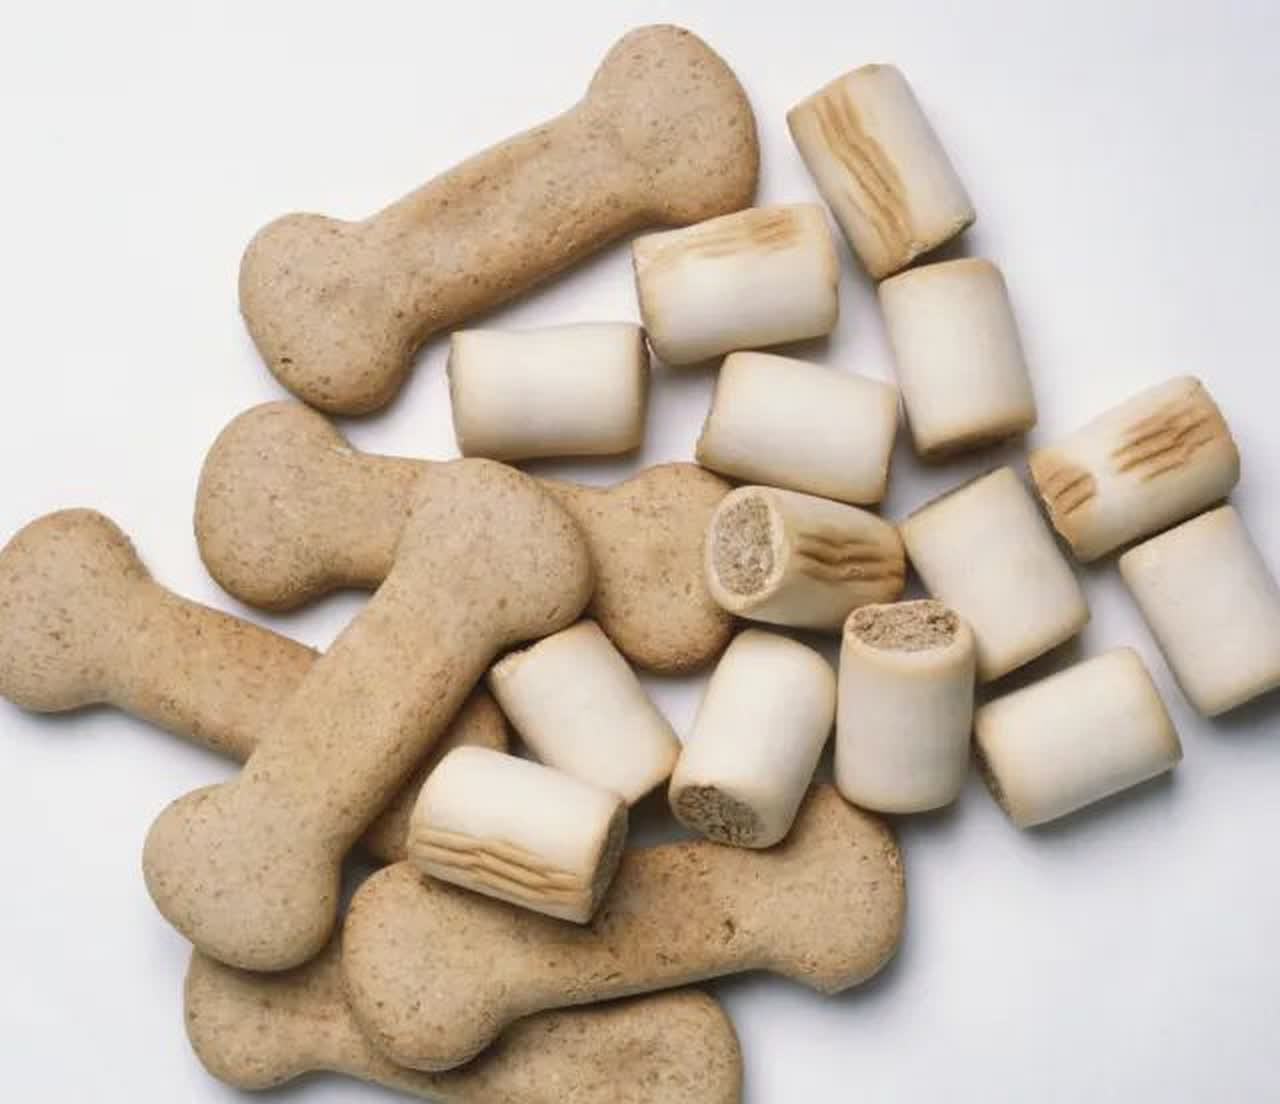 Square and bone-shaped dog biscuits